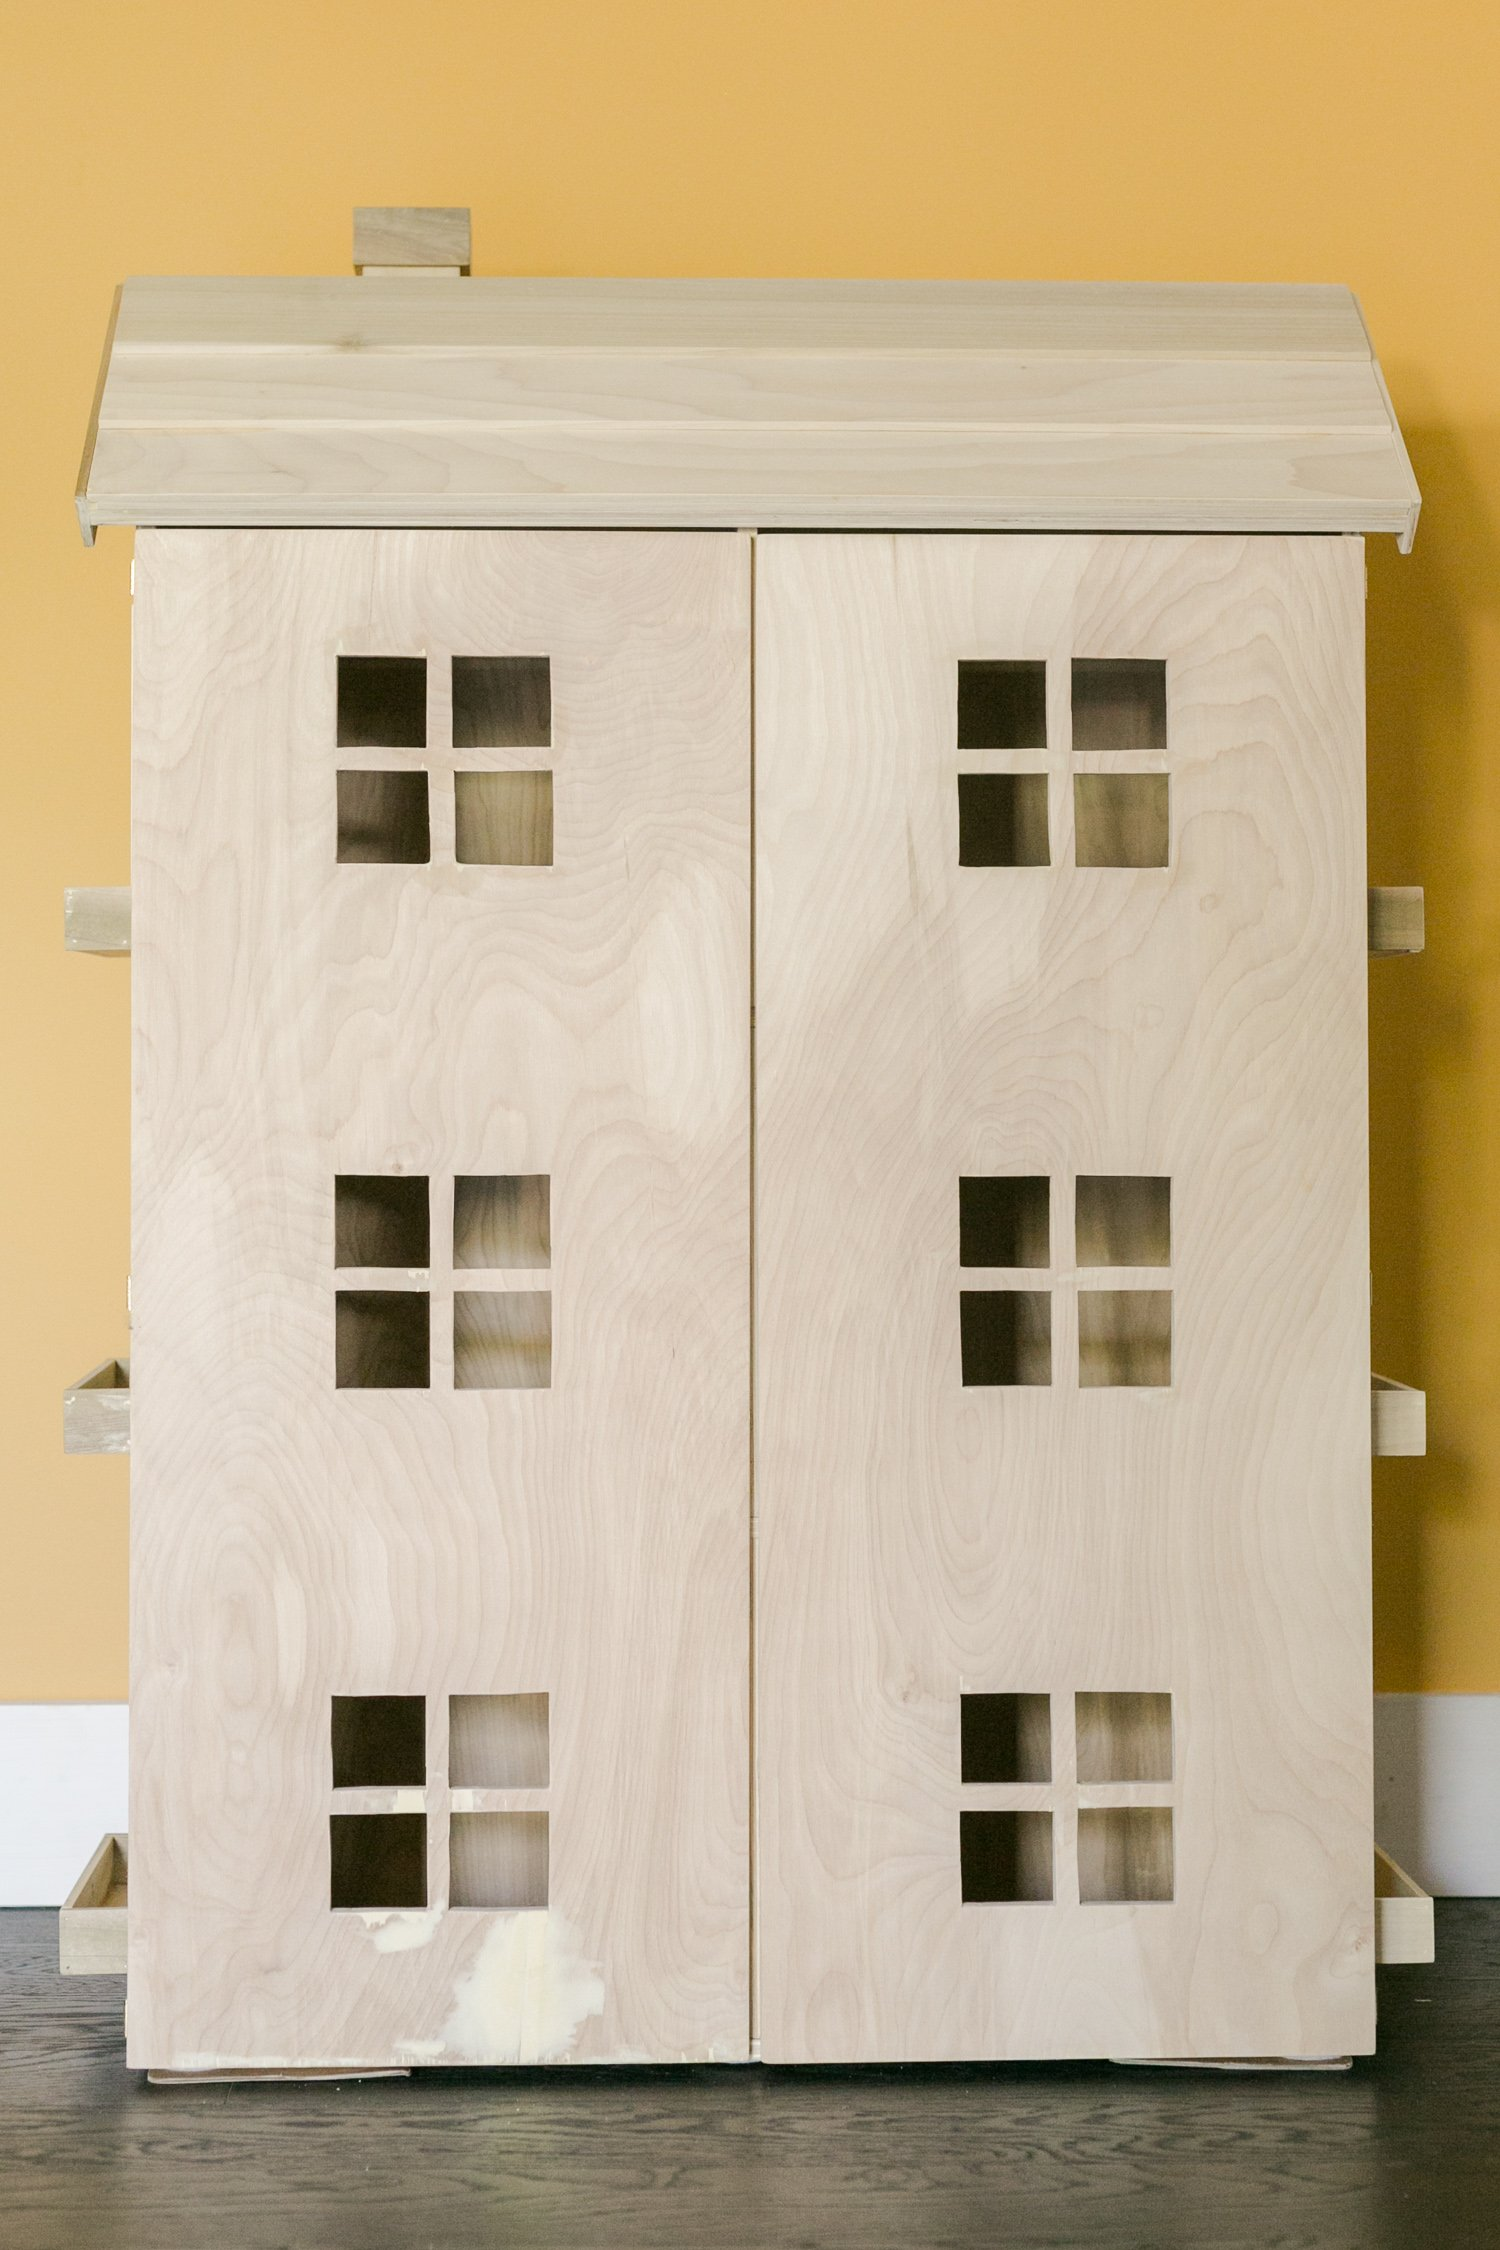 Free Project Plans to Build a Dollhouse That Opens